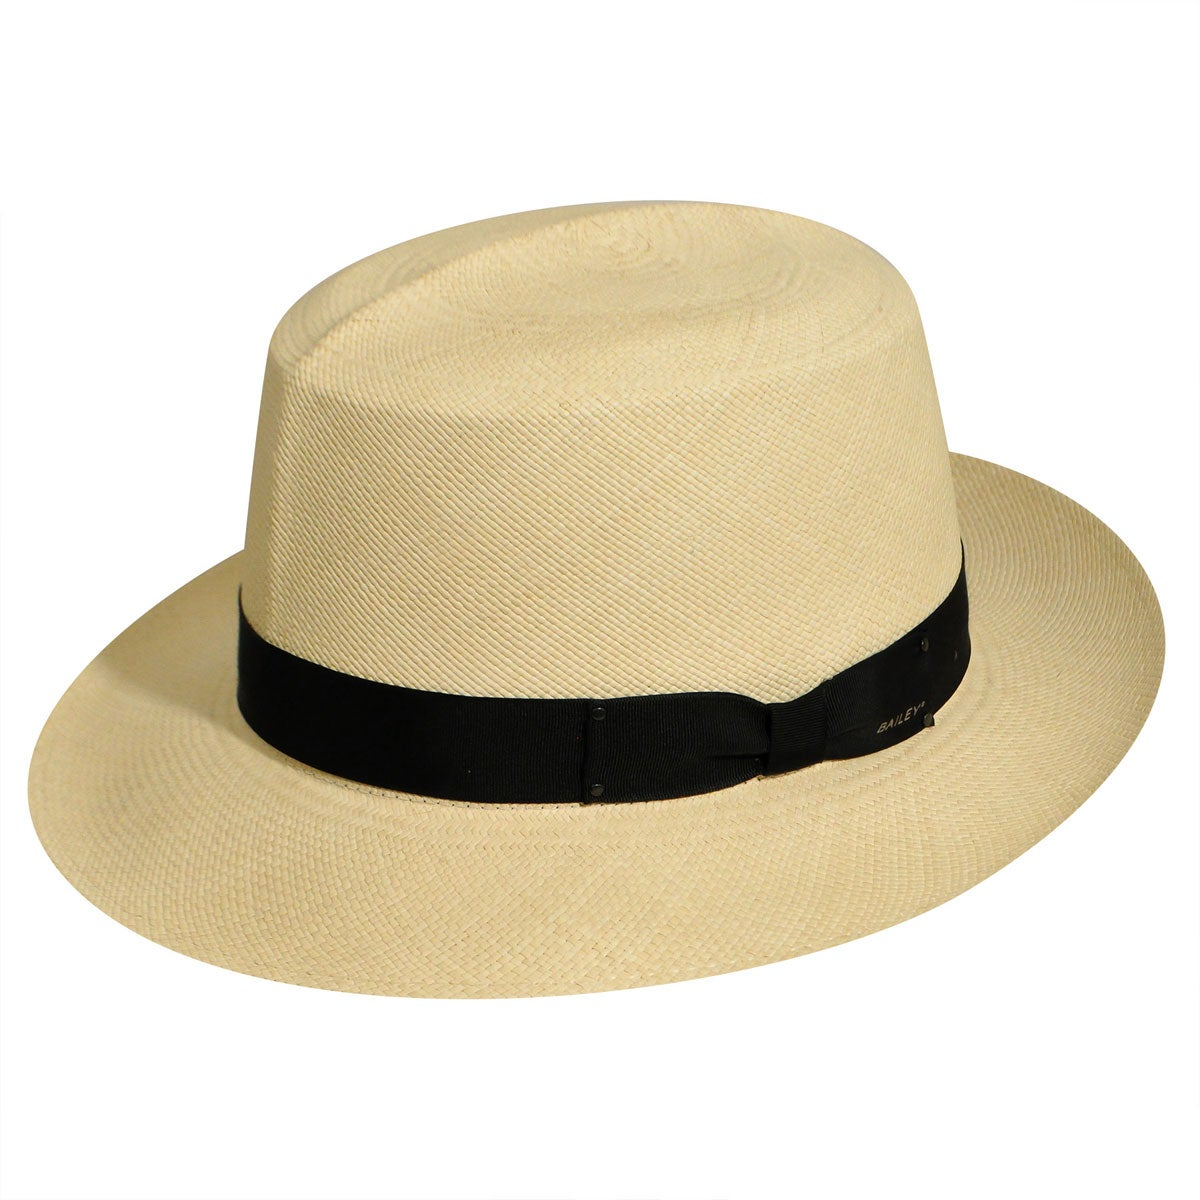 1930s Style Mens Hats and Caps Roll Up II Panama Fedora $230.00 AT vintagedancer.com